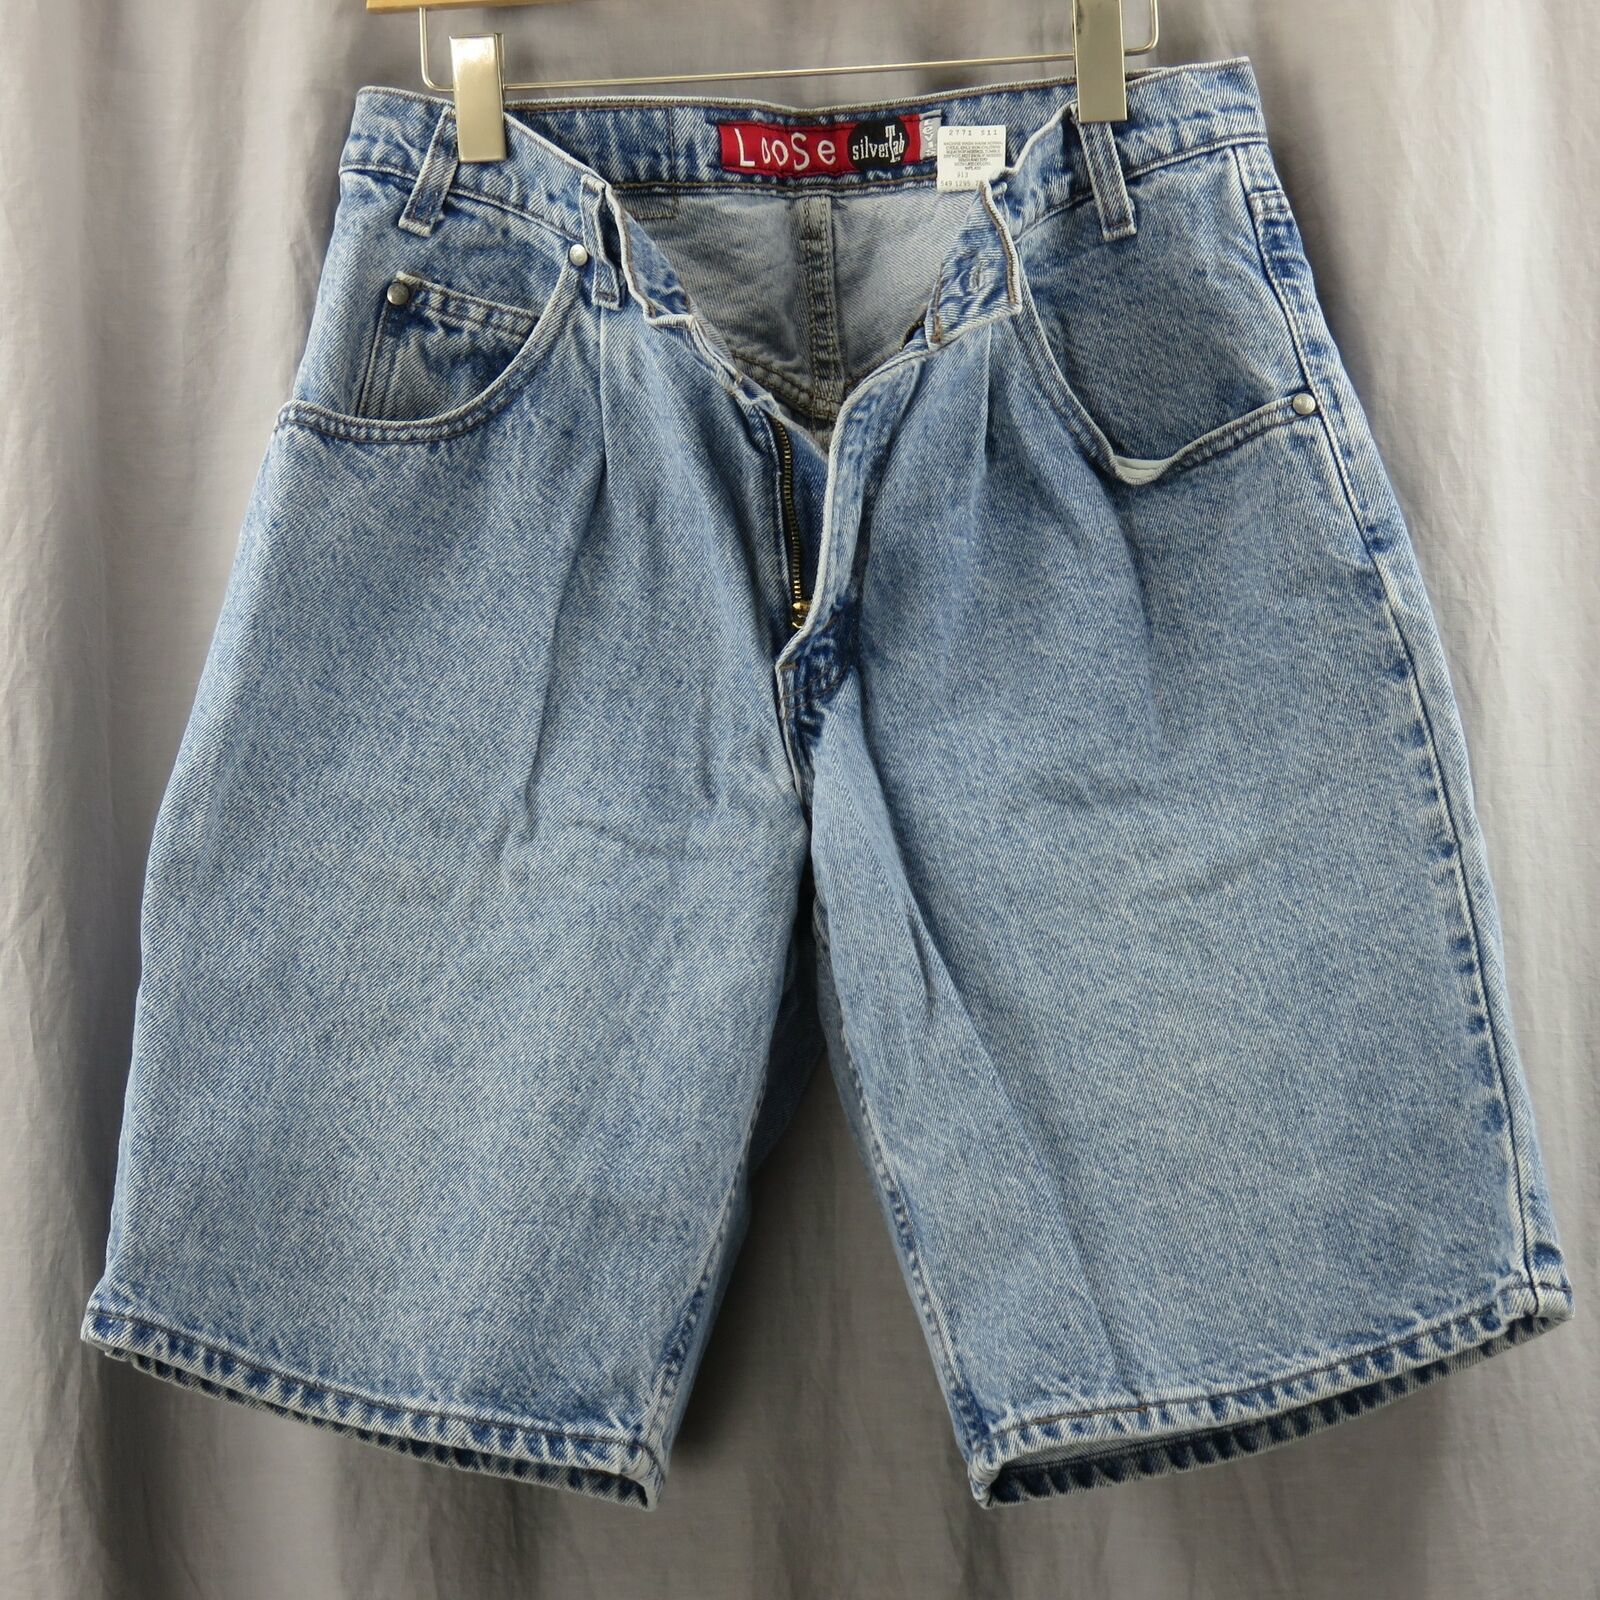 Levis Vintage Silvertab Loose Jean Shorts Size 32 Made In USA Pleated